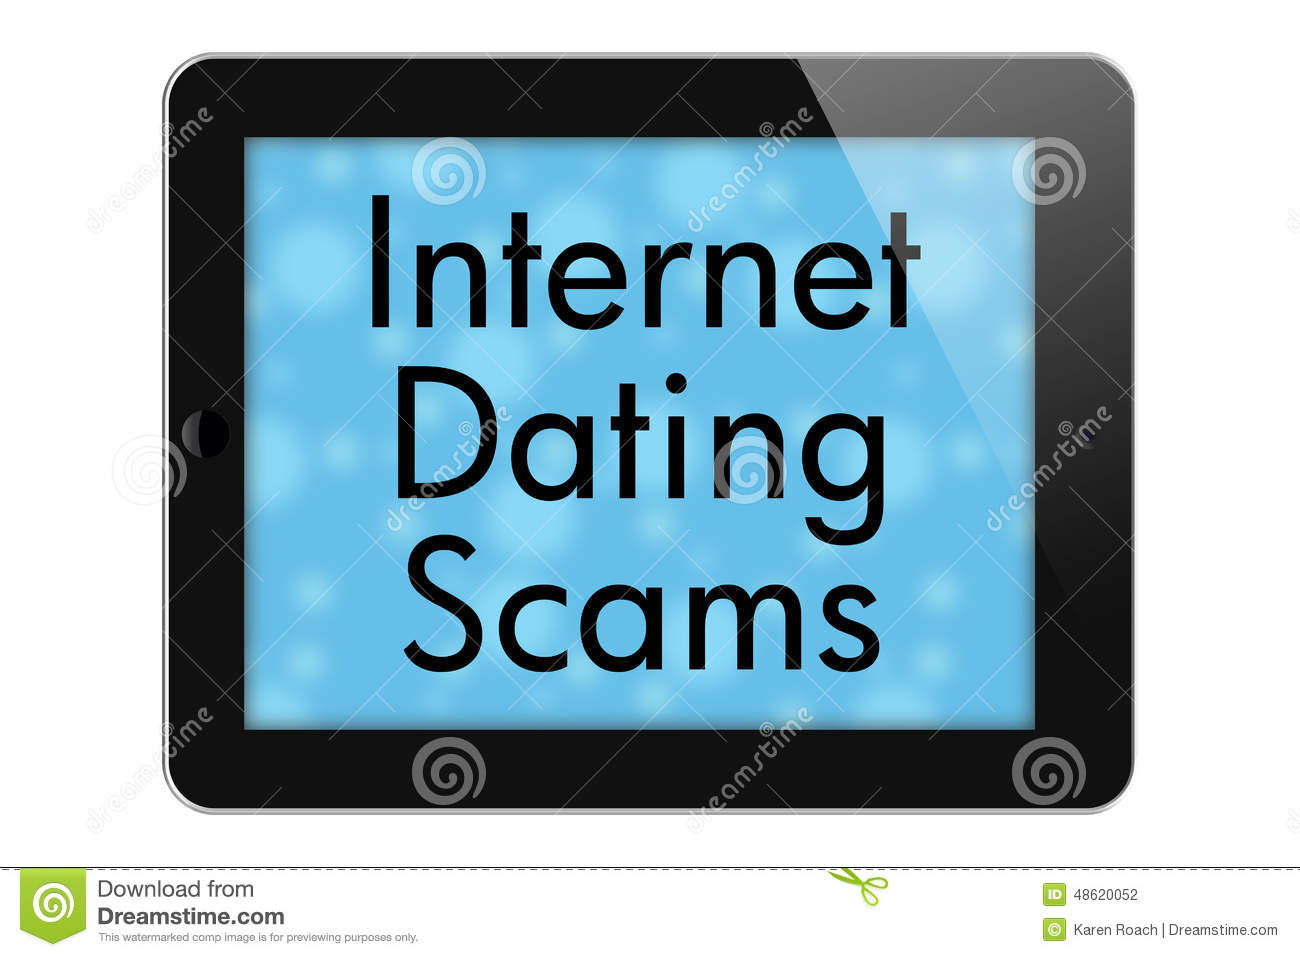 ghana online dating fraud list Older people are especially vulnerable to online dating scams how dating scams many scams originate in west african countries such as nigeria and ghana.